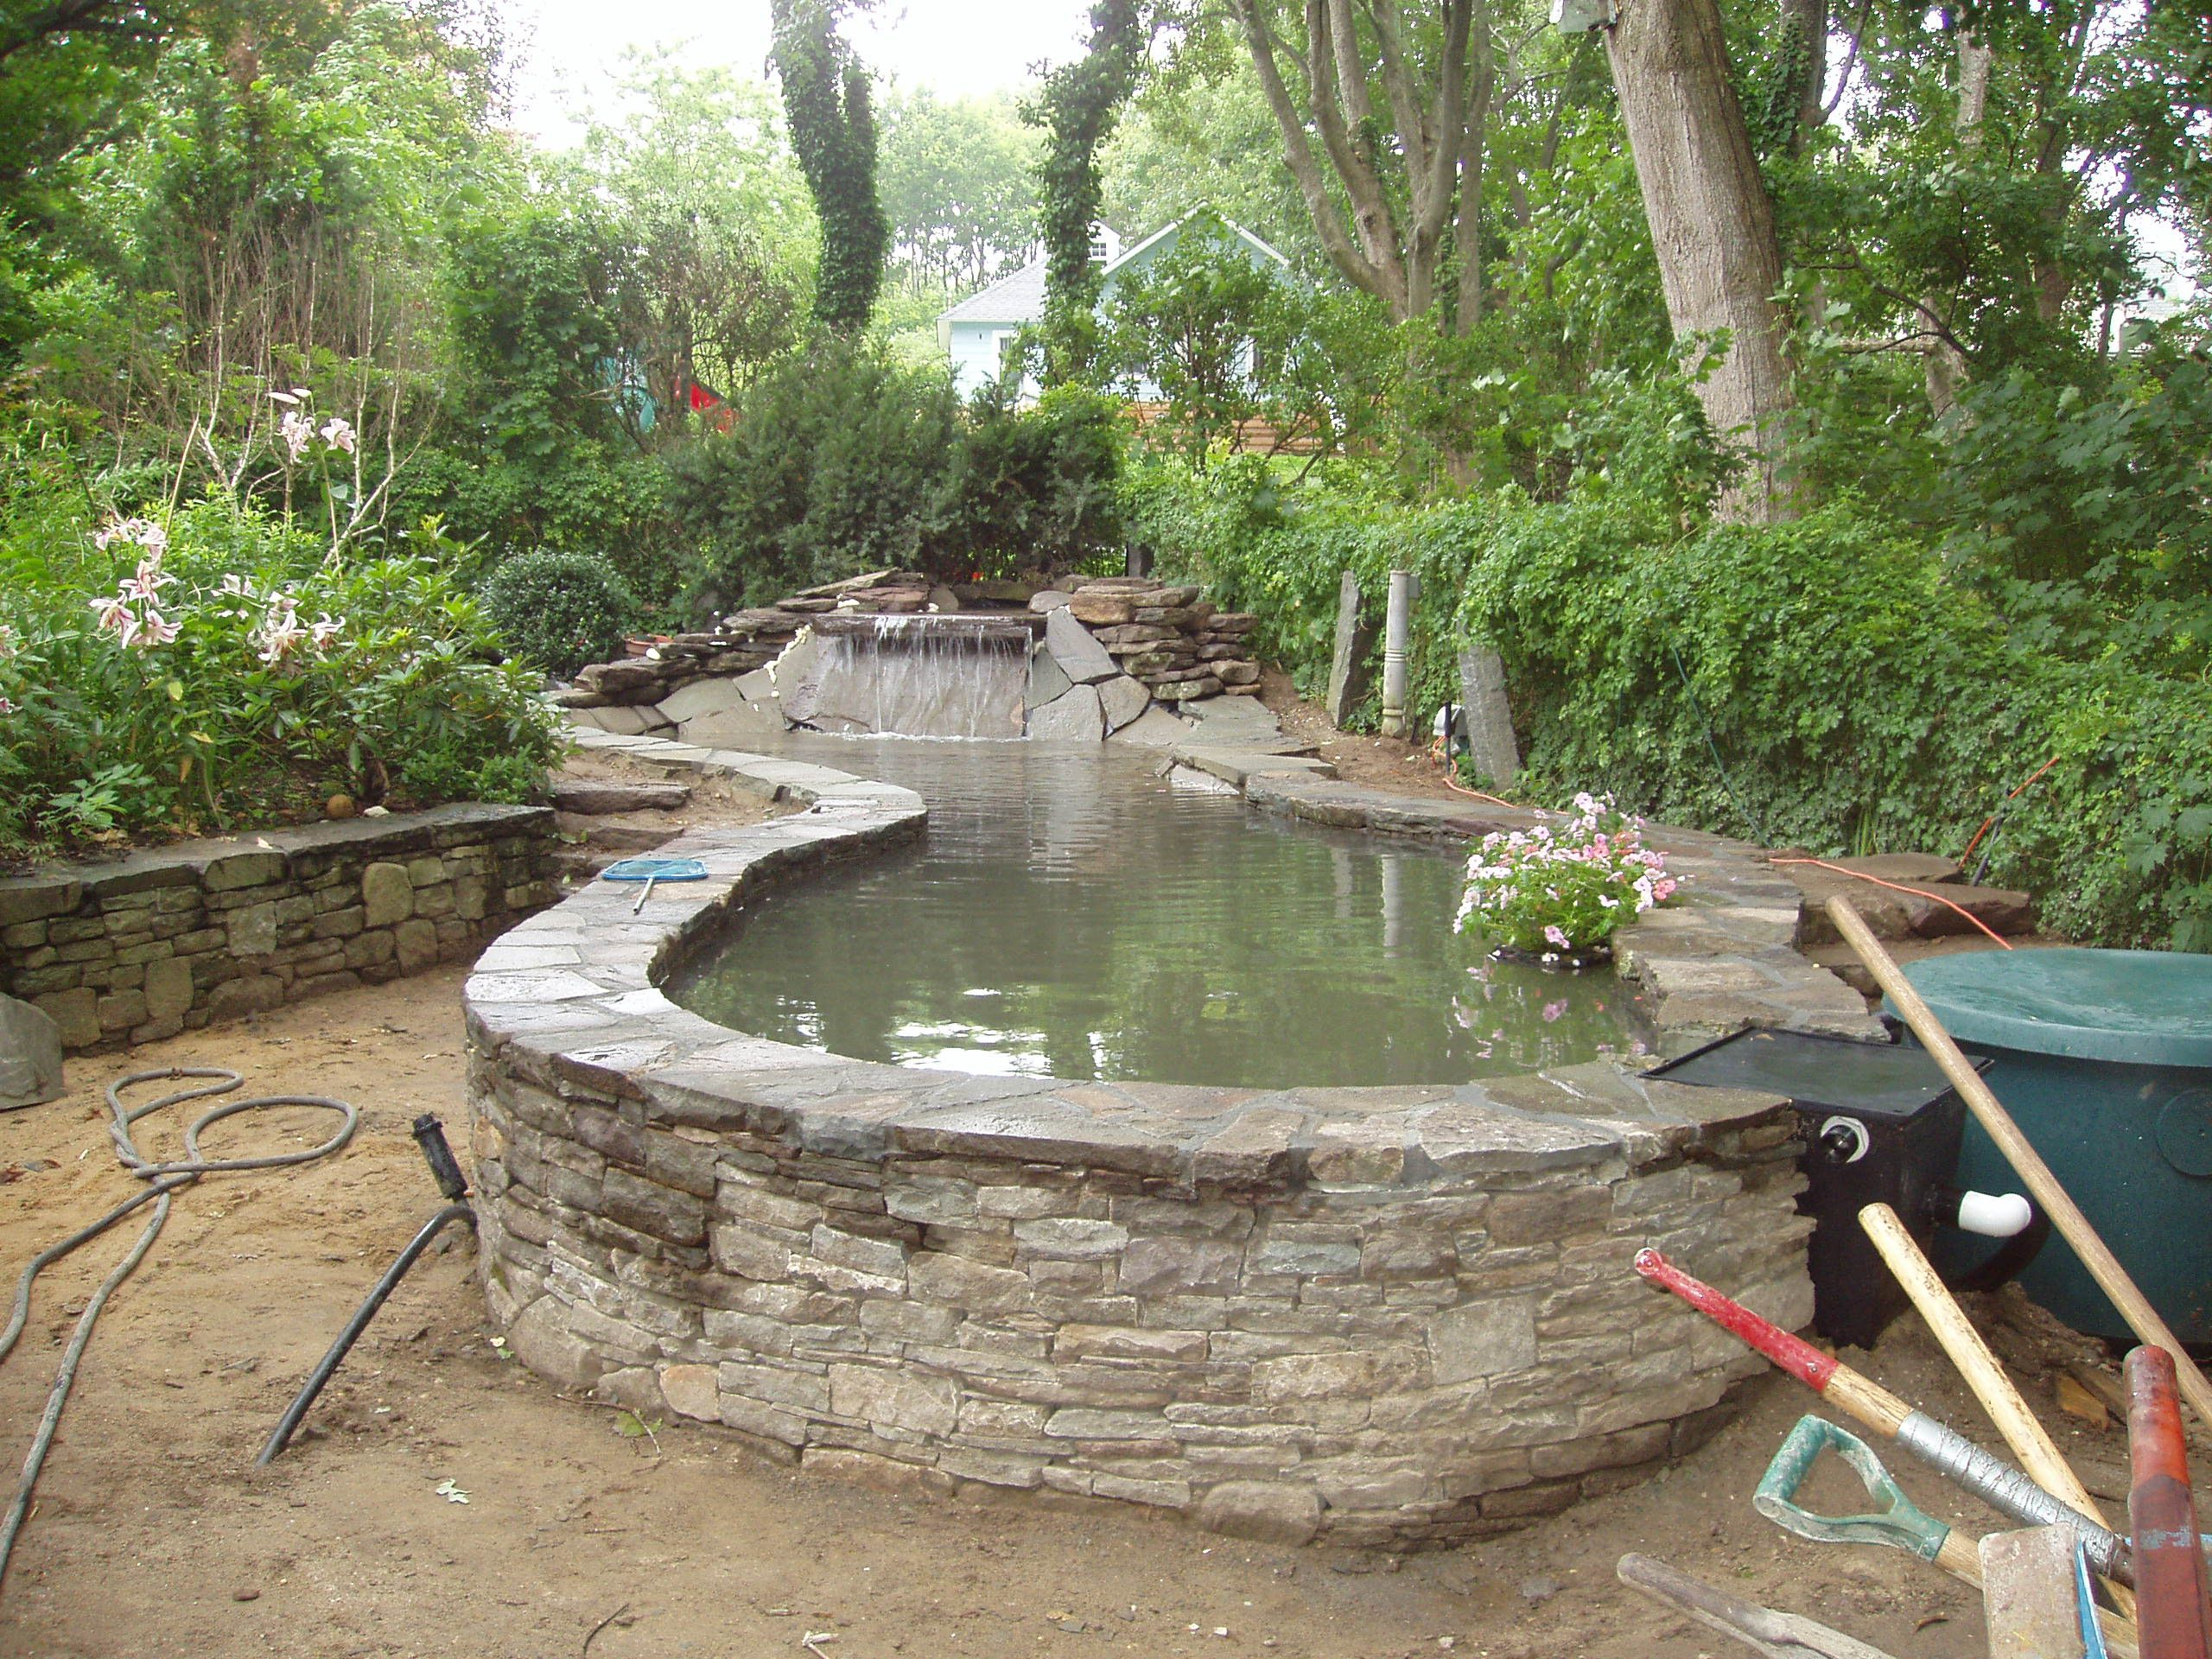 Fish pond pictures 95740 wallpapers things to make for Building a koi fish pond